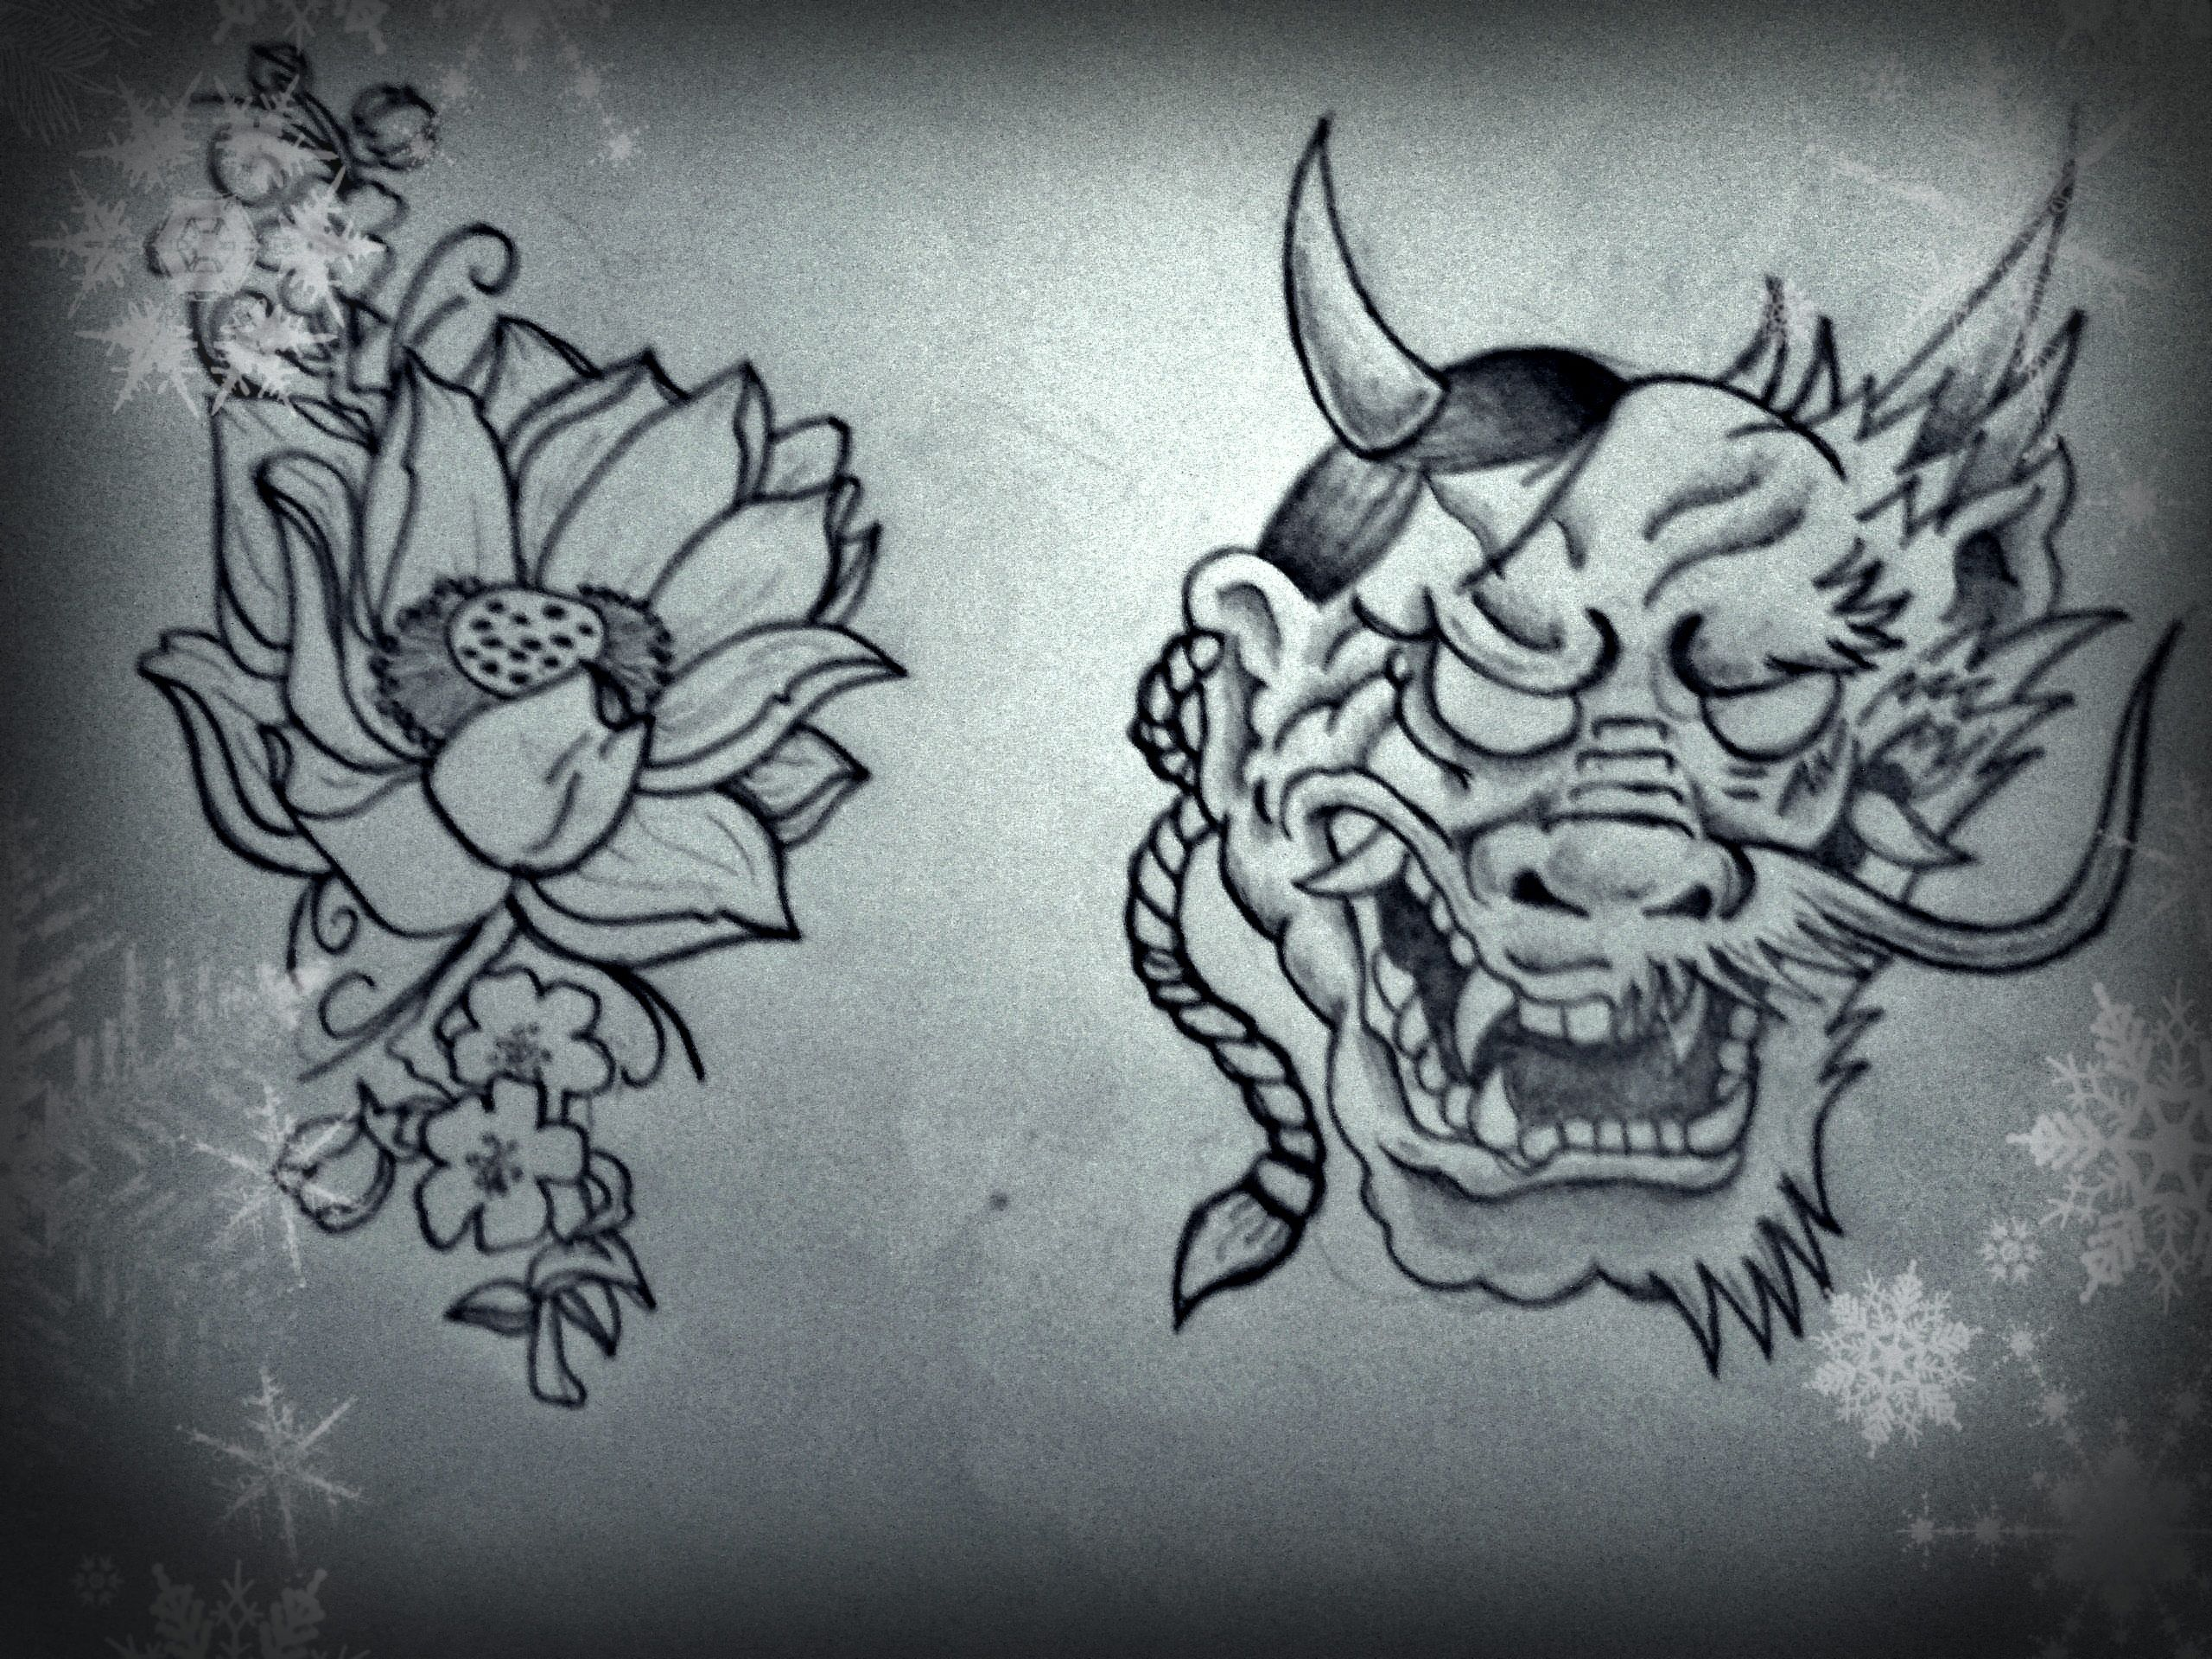 Lotus flower and cherry blossoms oni mask merged with a dragon face lotus flower and cherry blossoms oni mask merged with a dragon face izmirmasajfo Images